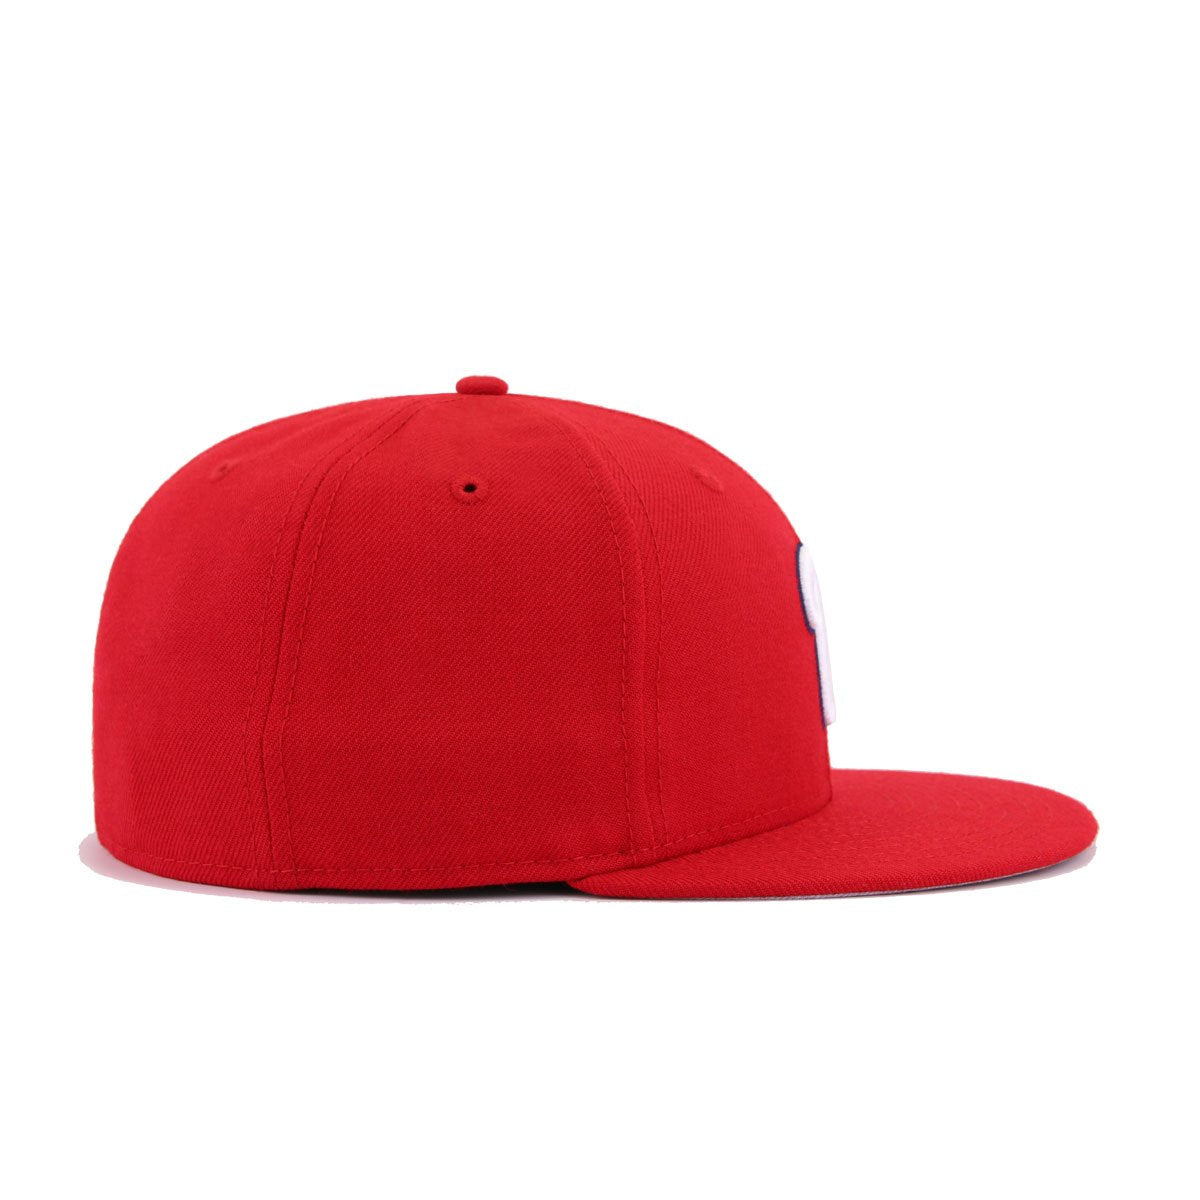 Washington Nationals Scarlet Cooperstown New Era 59Fifty Fitted